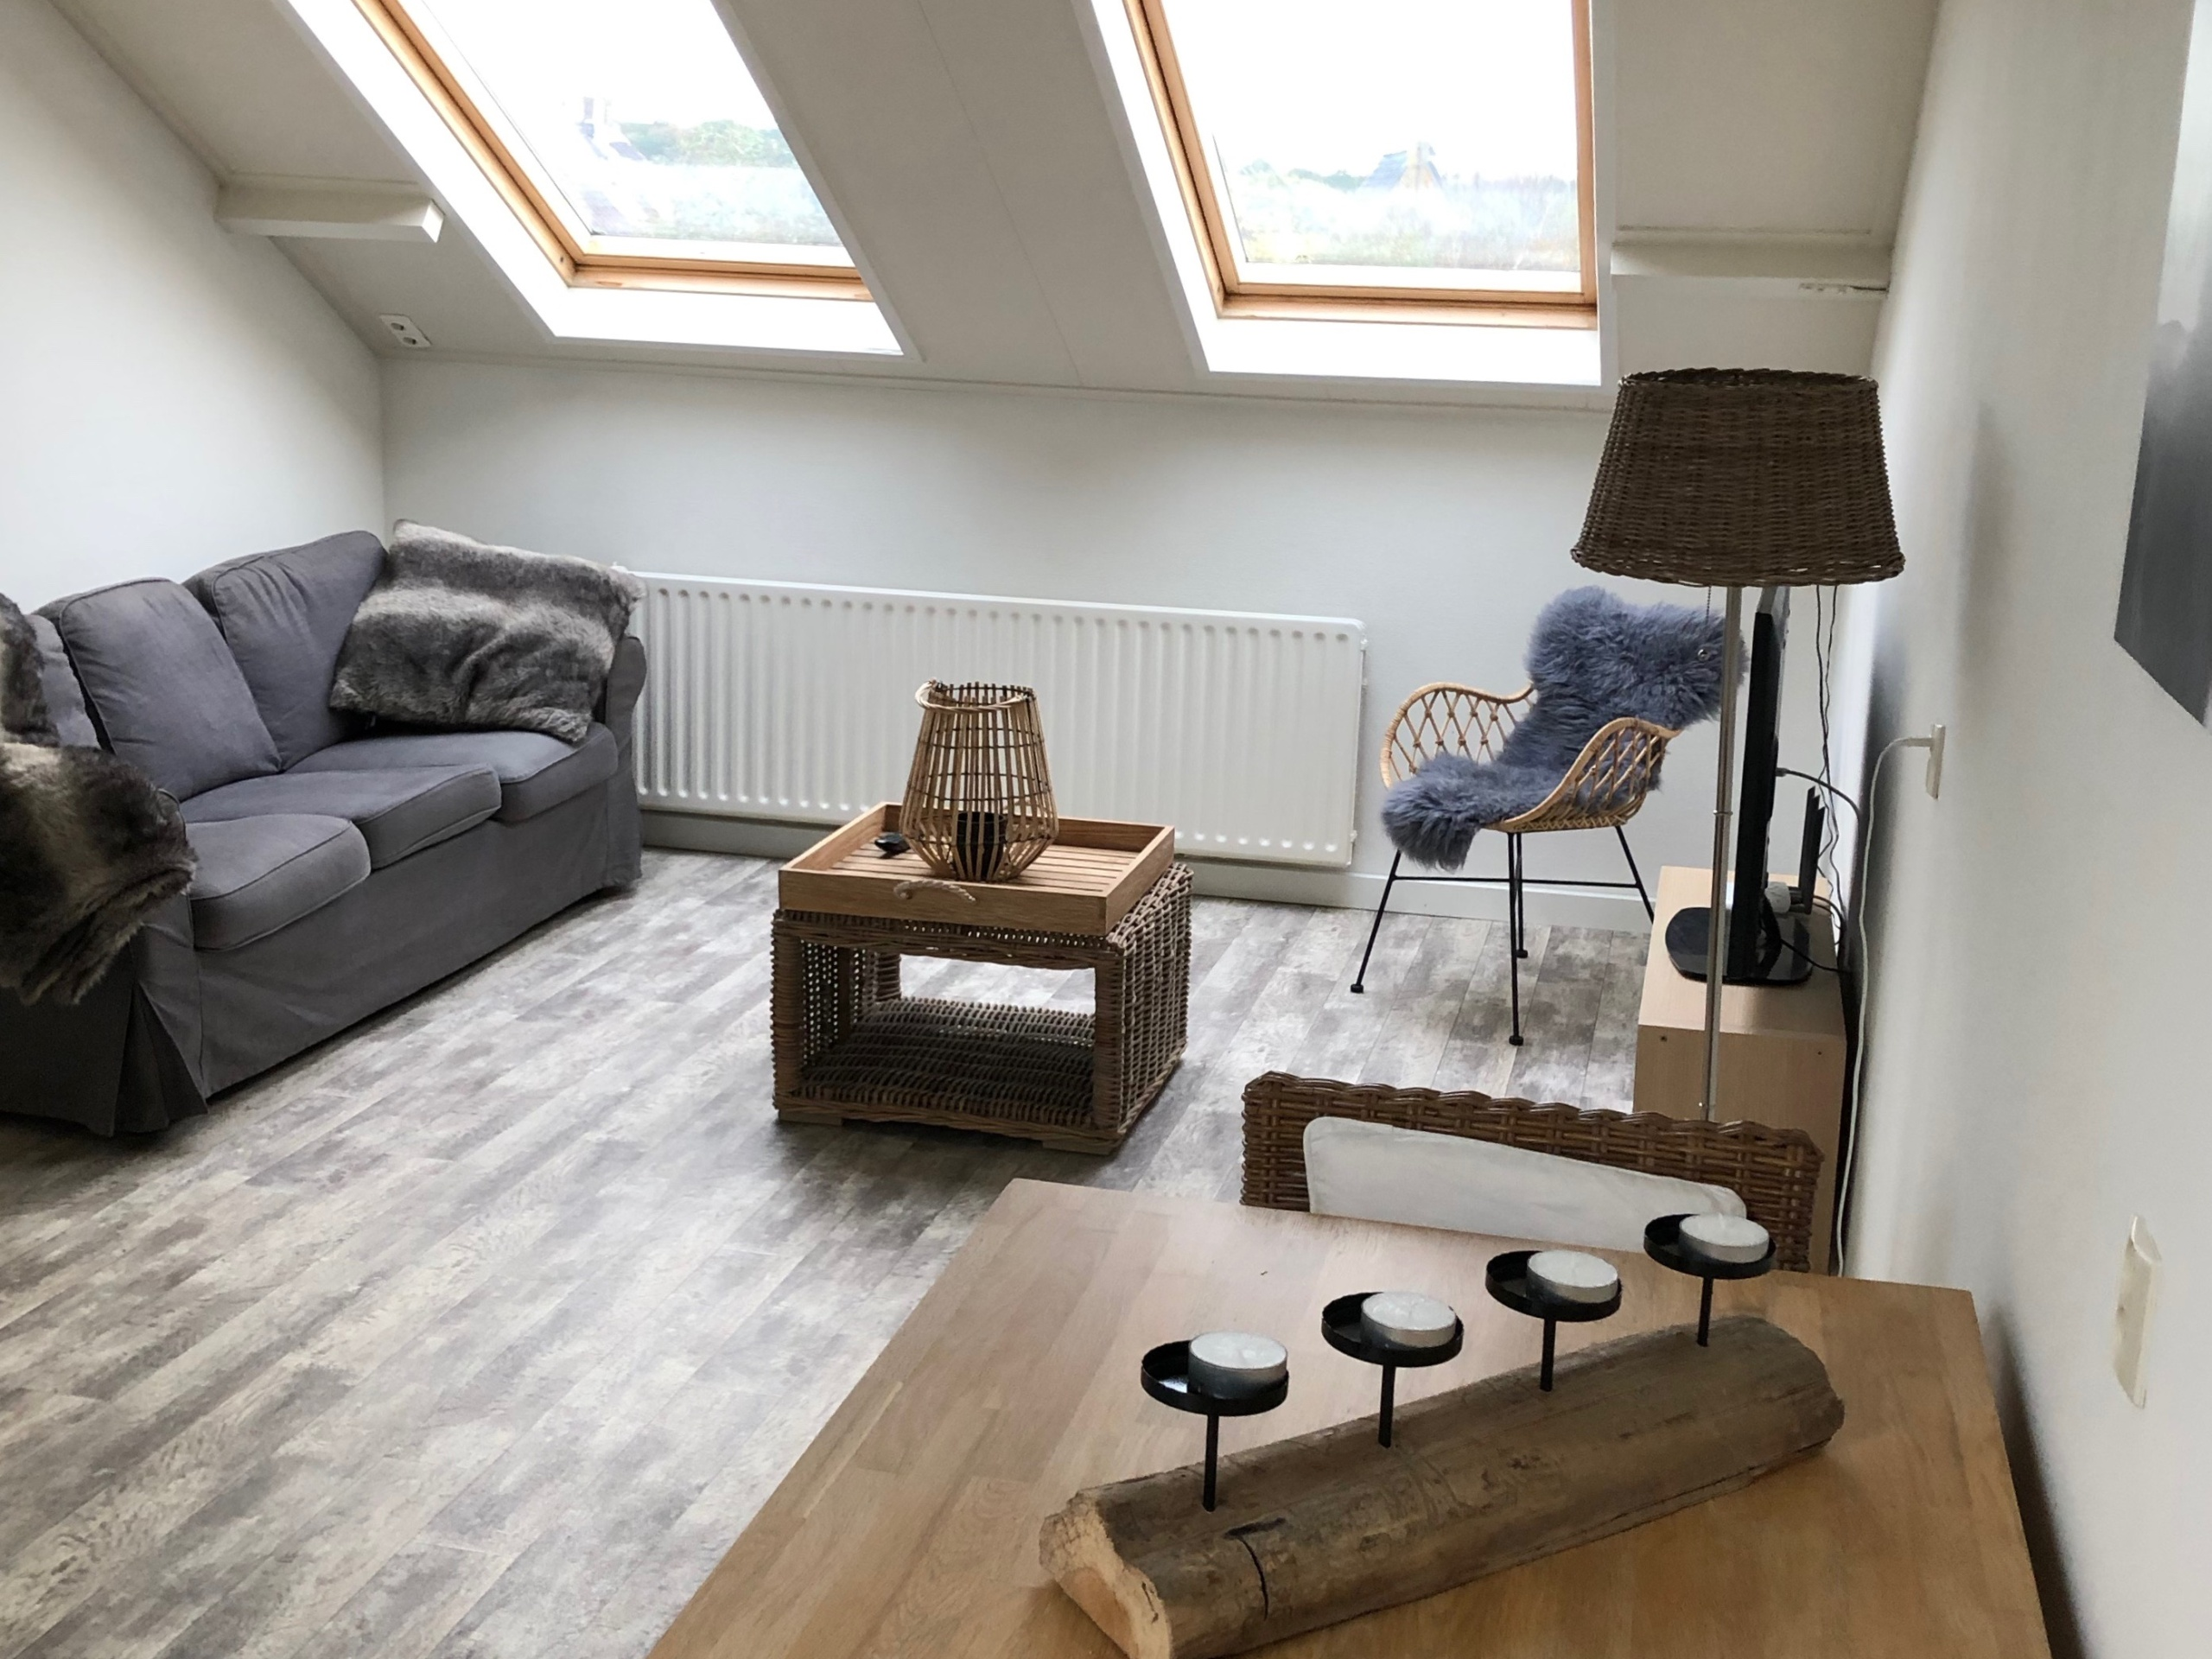 B&B with separate living room and bedroom in De Koog. Beach within walking distance!